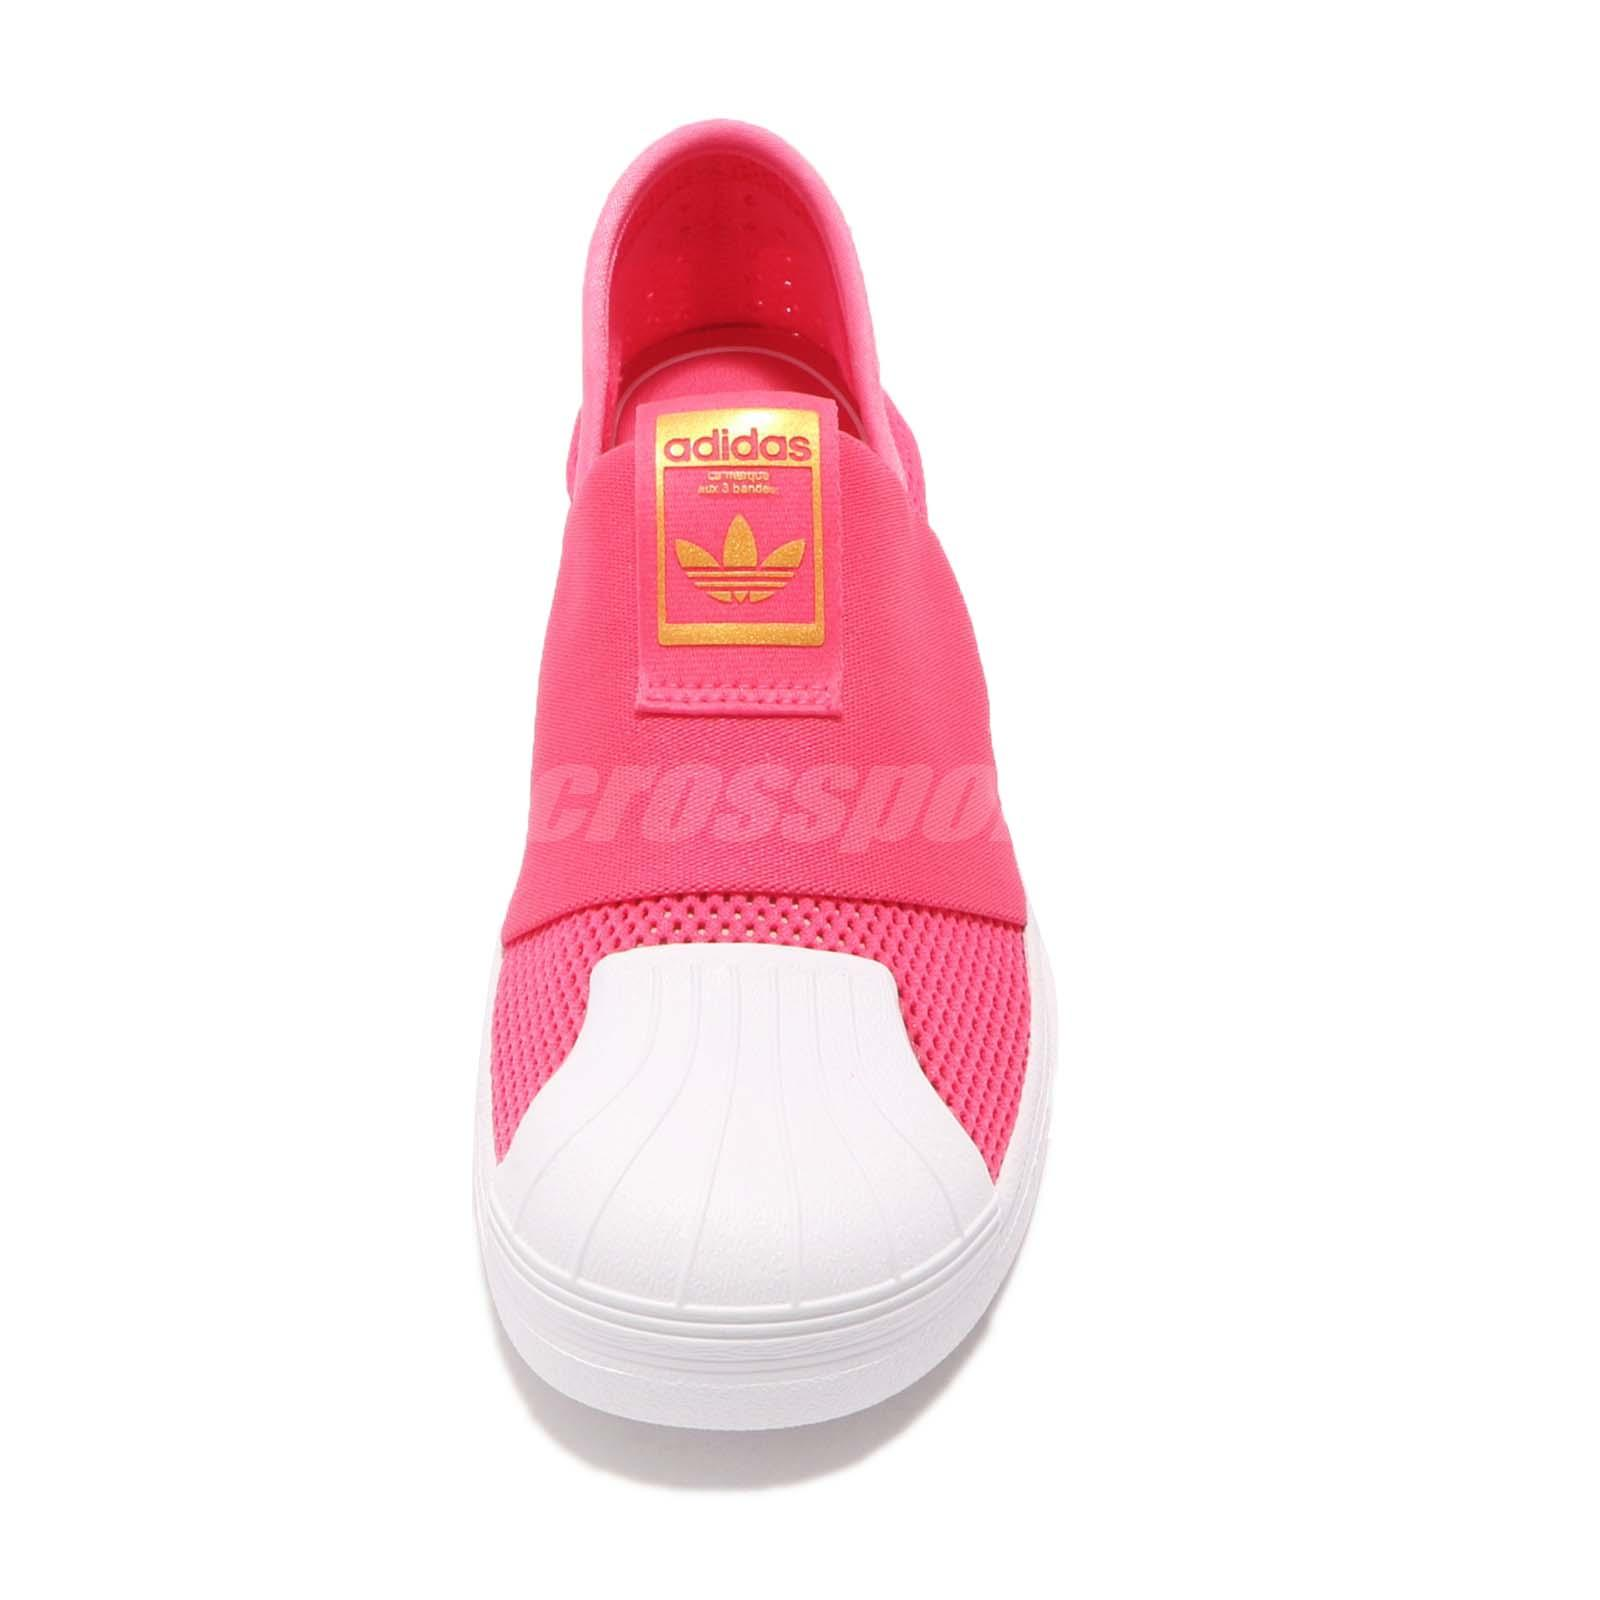 buy online b7462 07102 adidas Originals Superstar SMR 360 C Pink White Kid Junior Casual ...